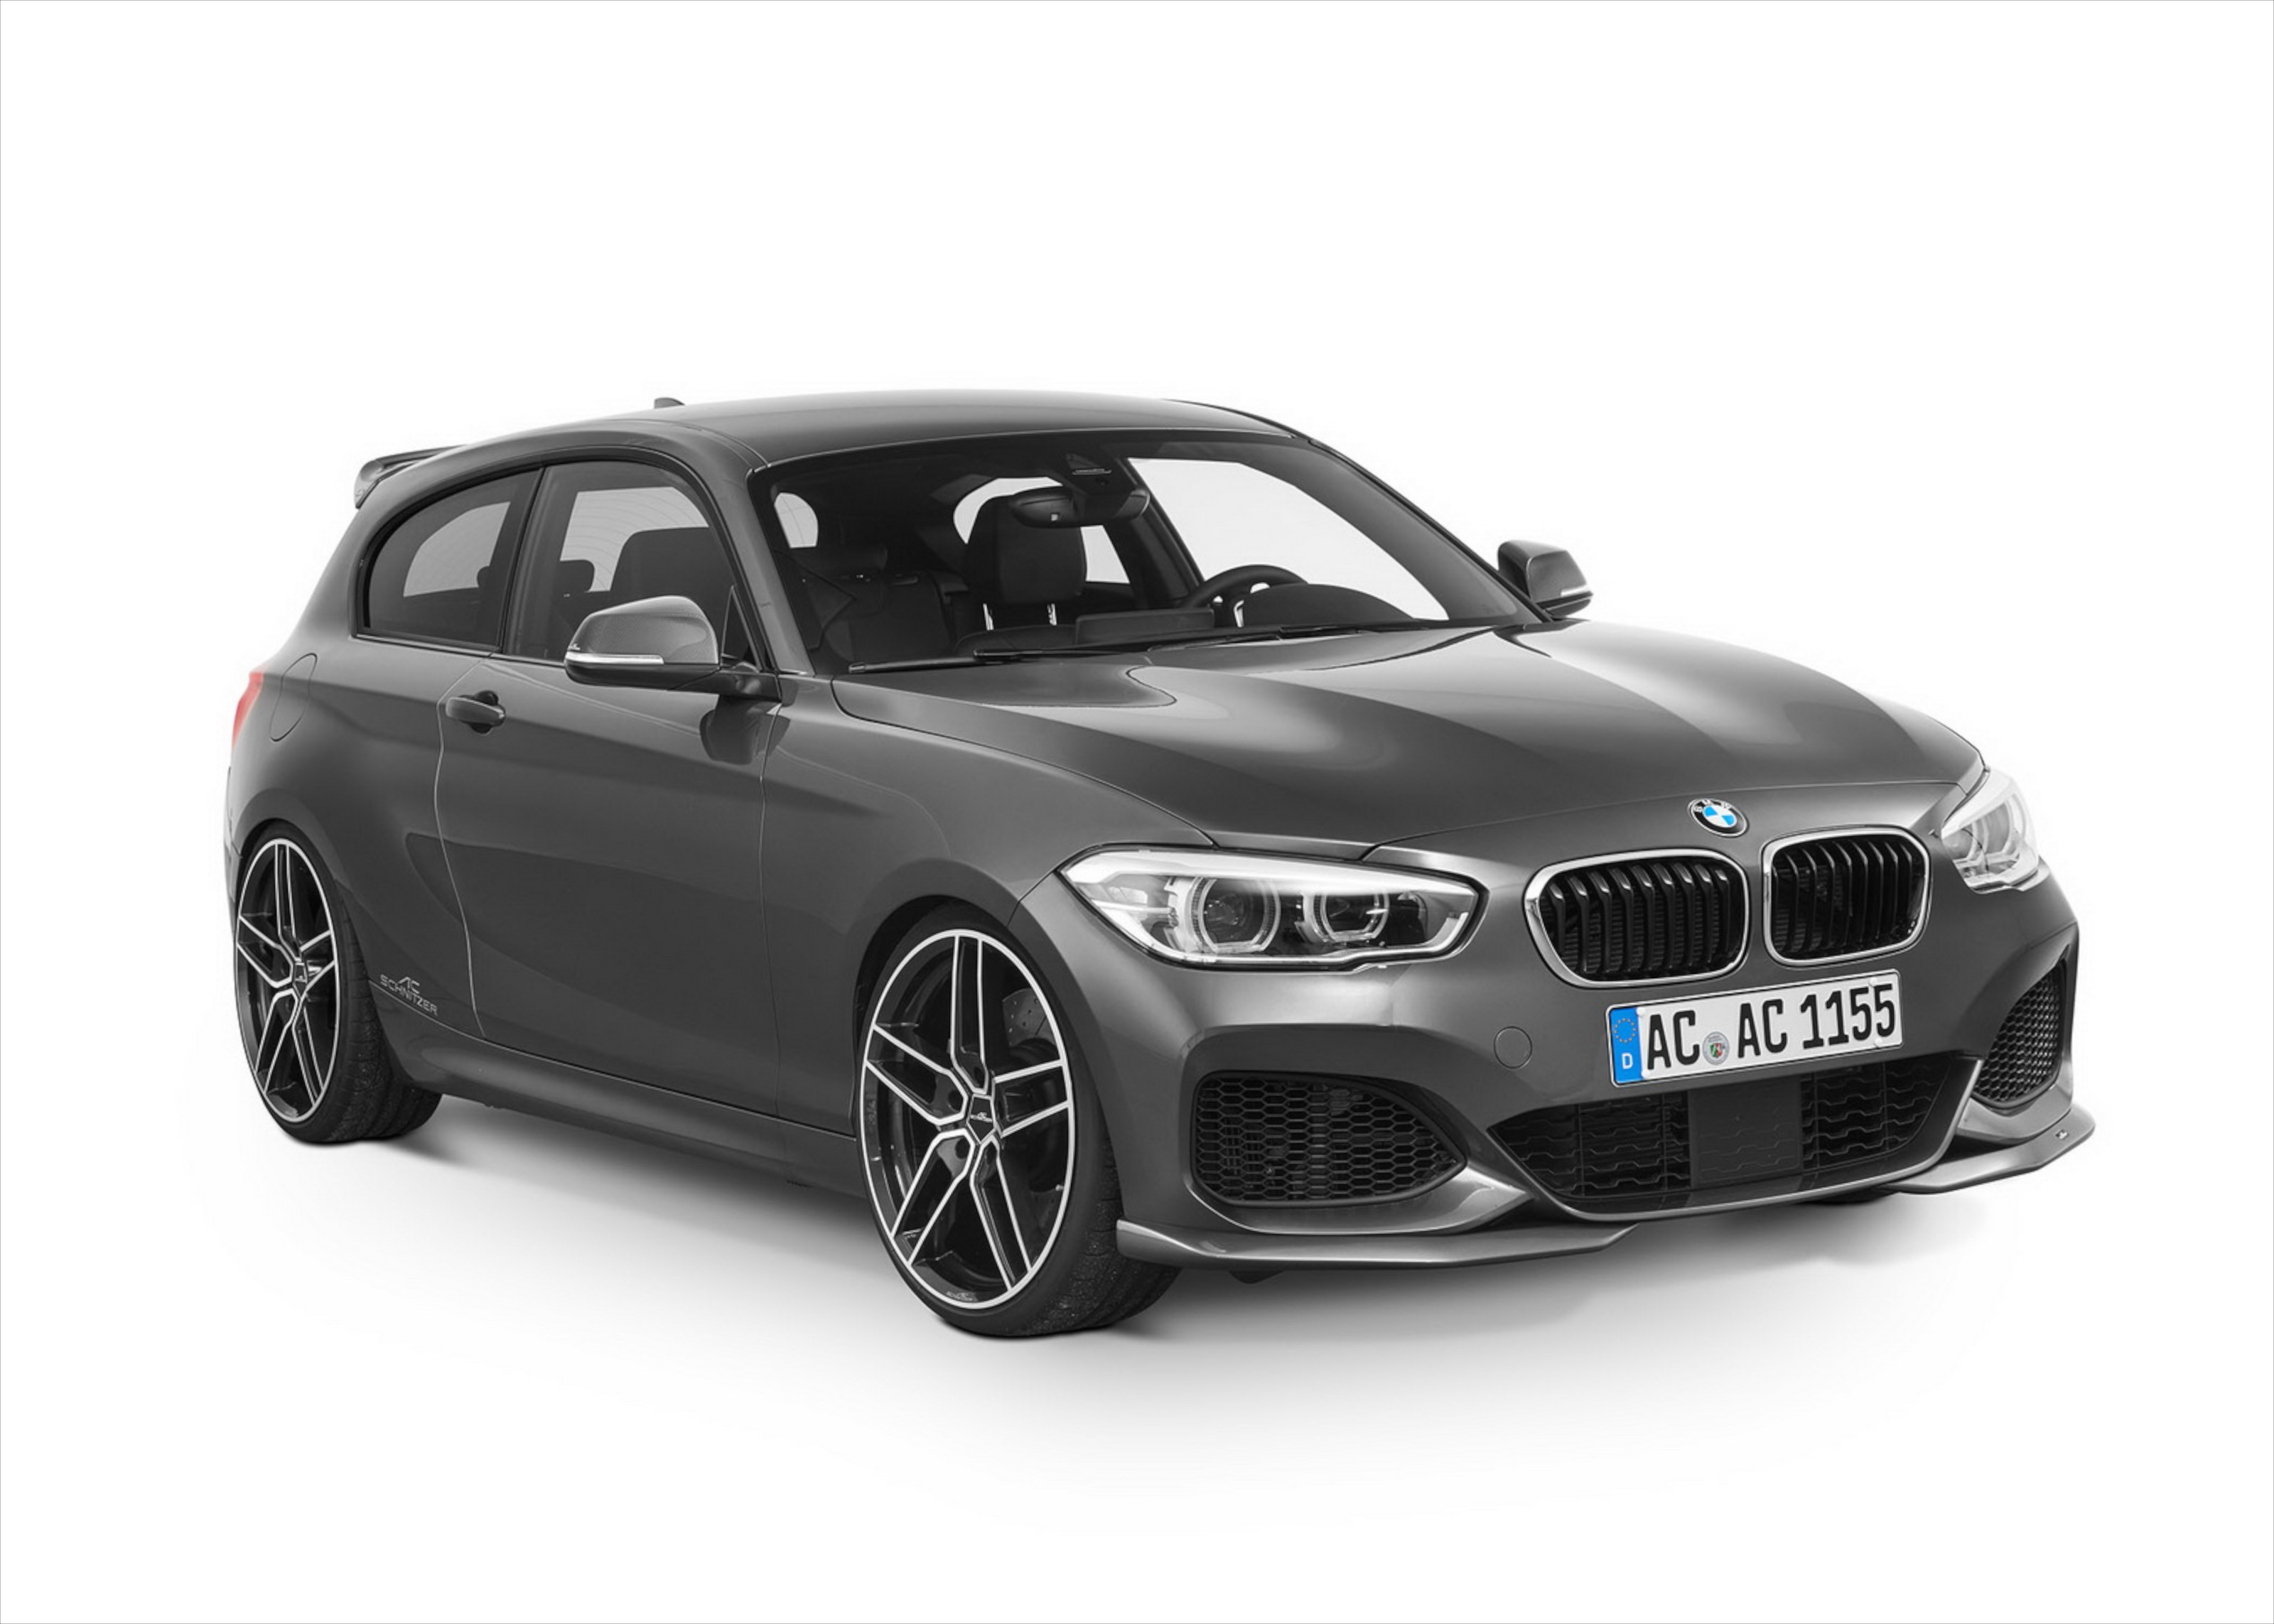 f20 bmw 1 series with 400 ps/800 nmac schnitzer image 413884